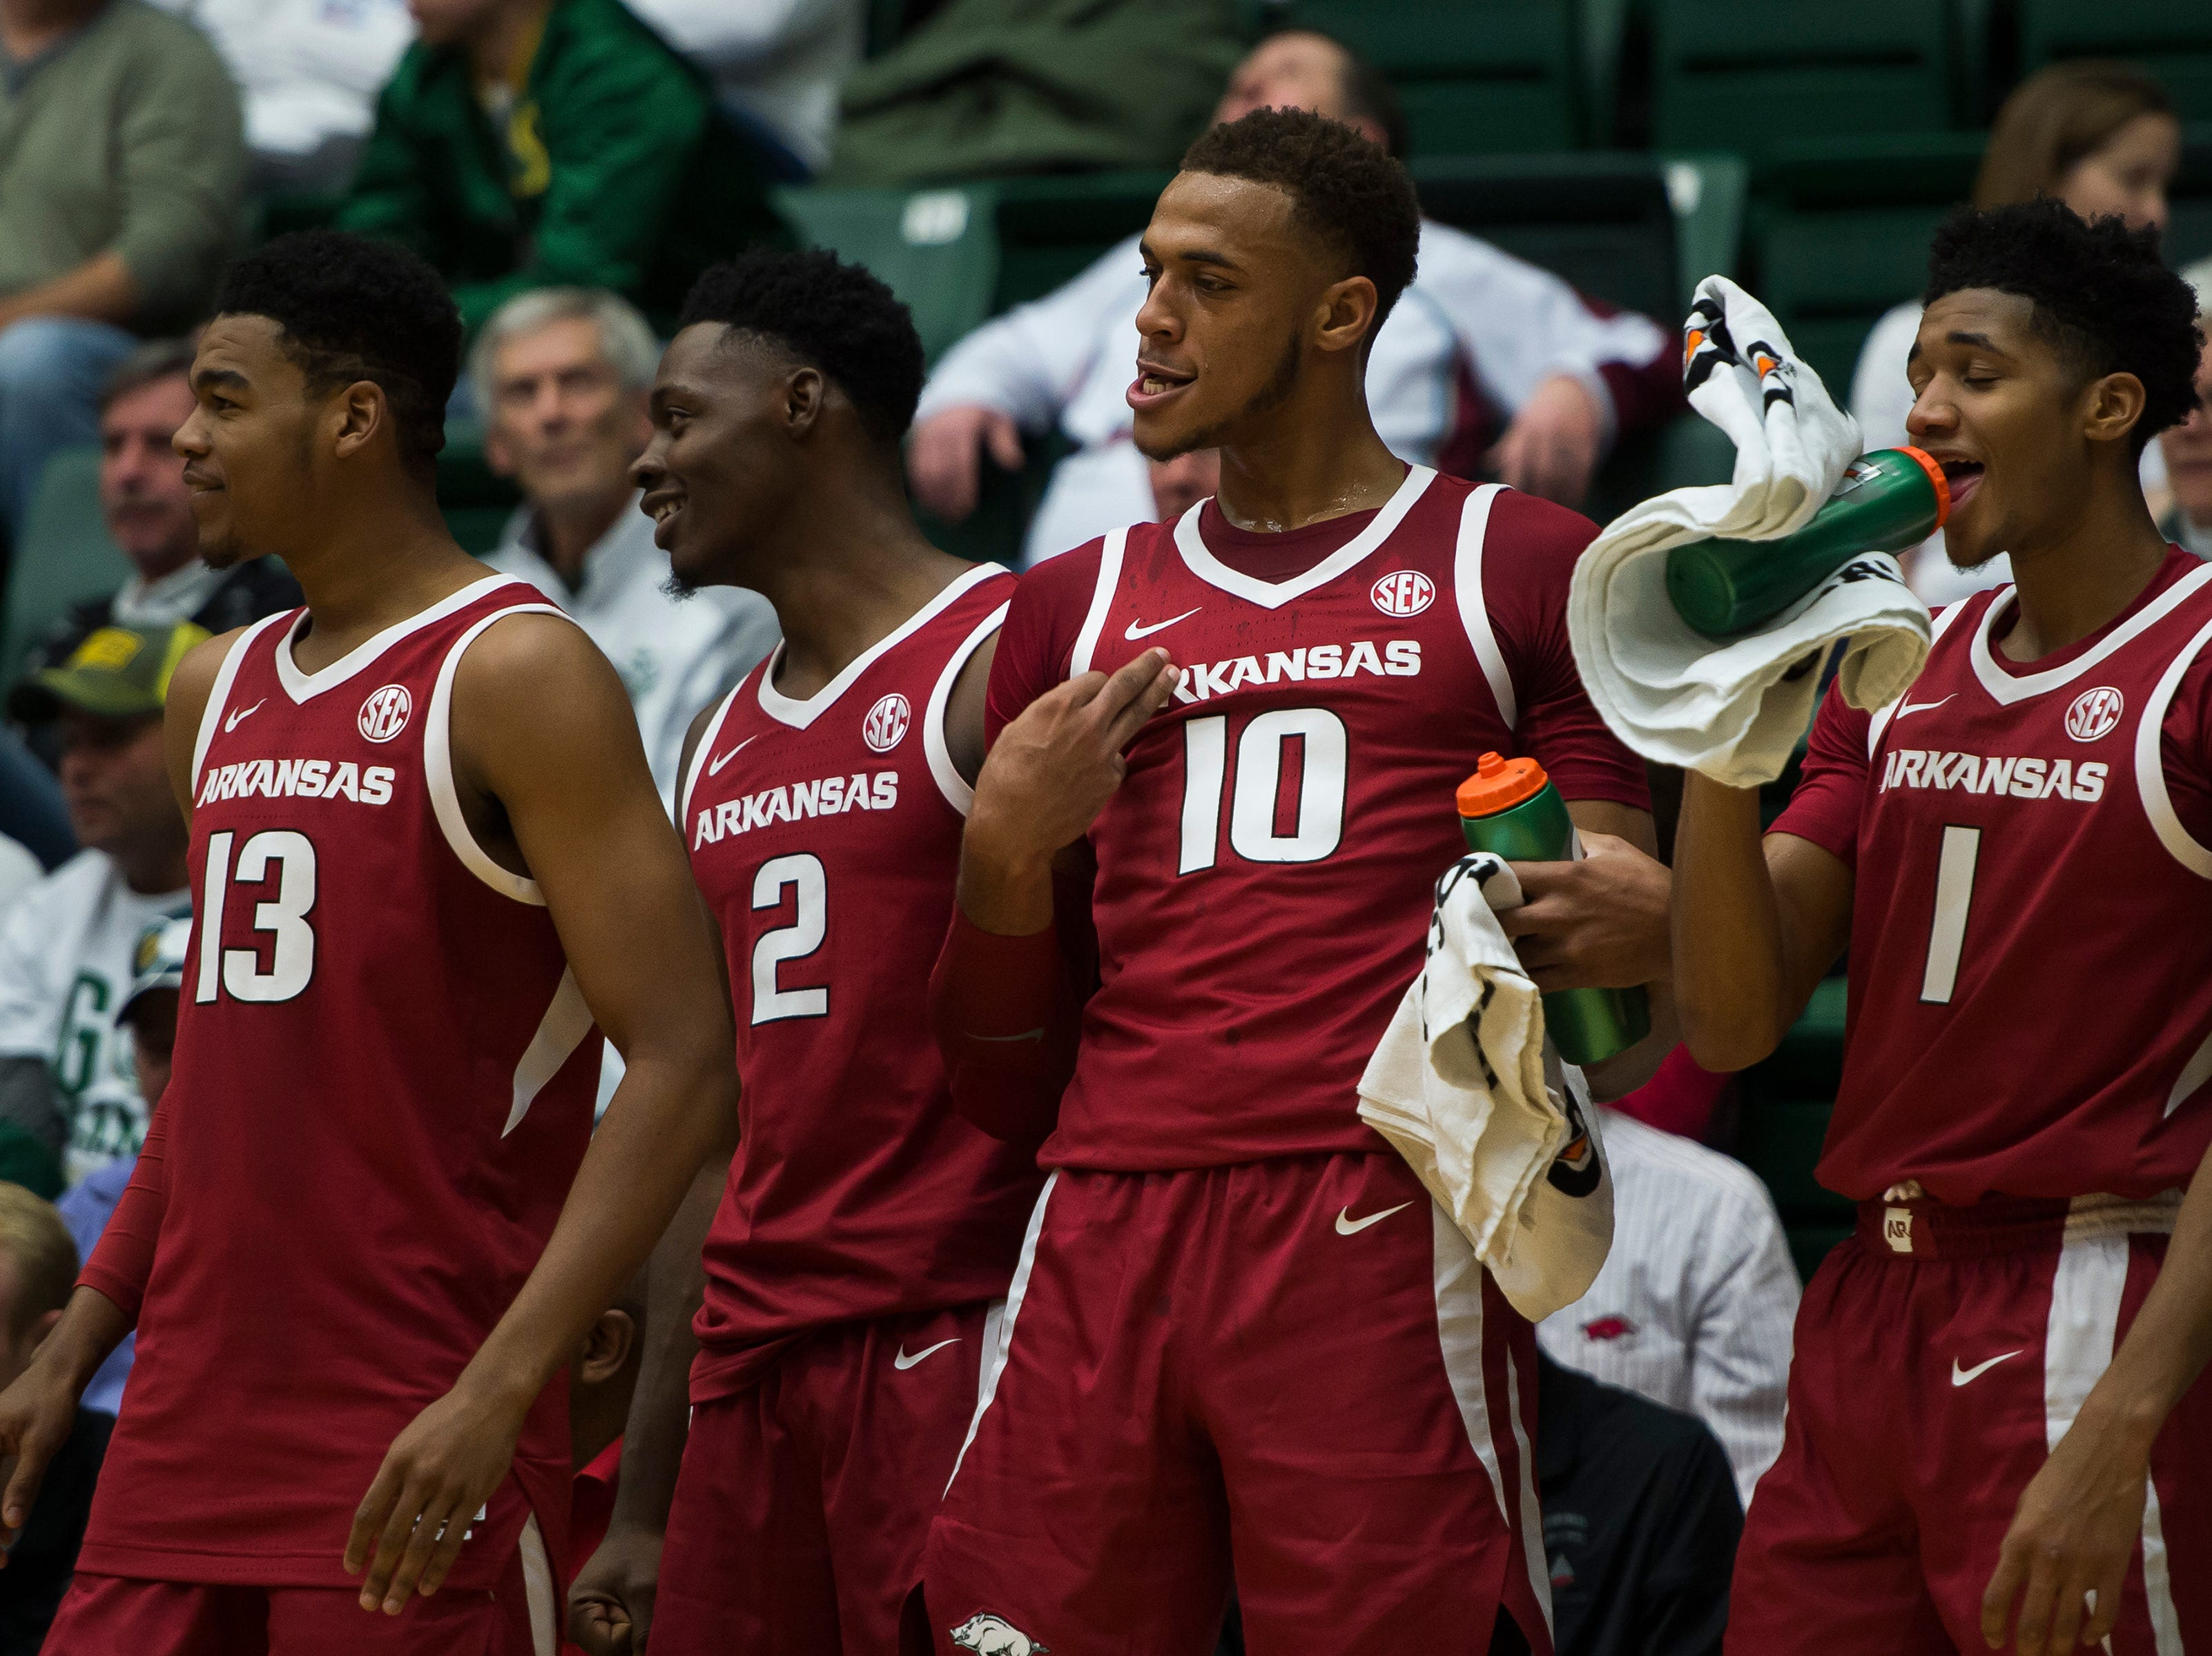 The Arkansas bench reacts toward the end of a win over Colorado State University on Wednesday, Dec. 5, 2018, Moby Arena in Fort Collins, Colo.